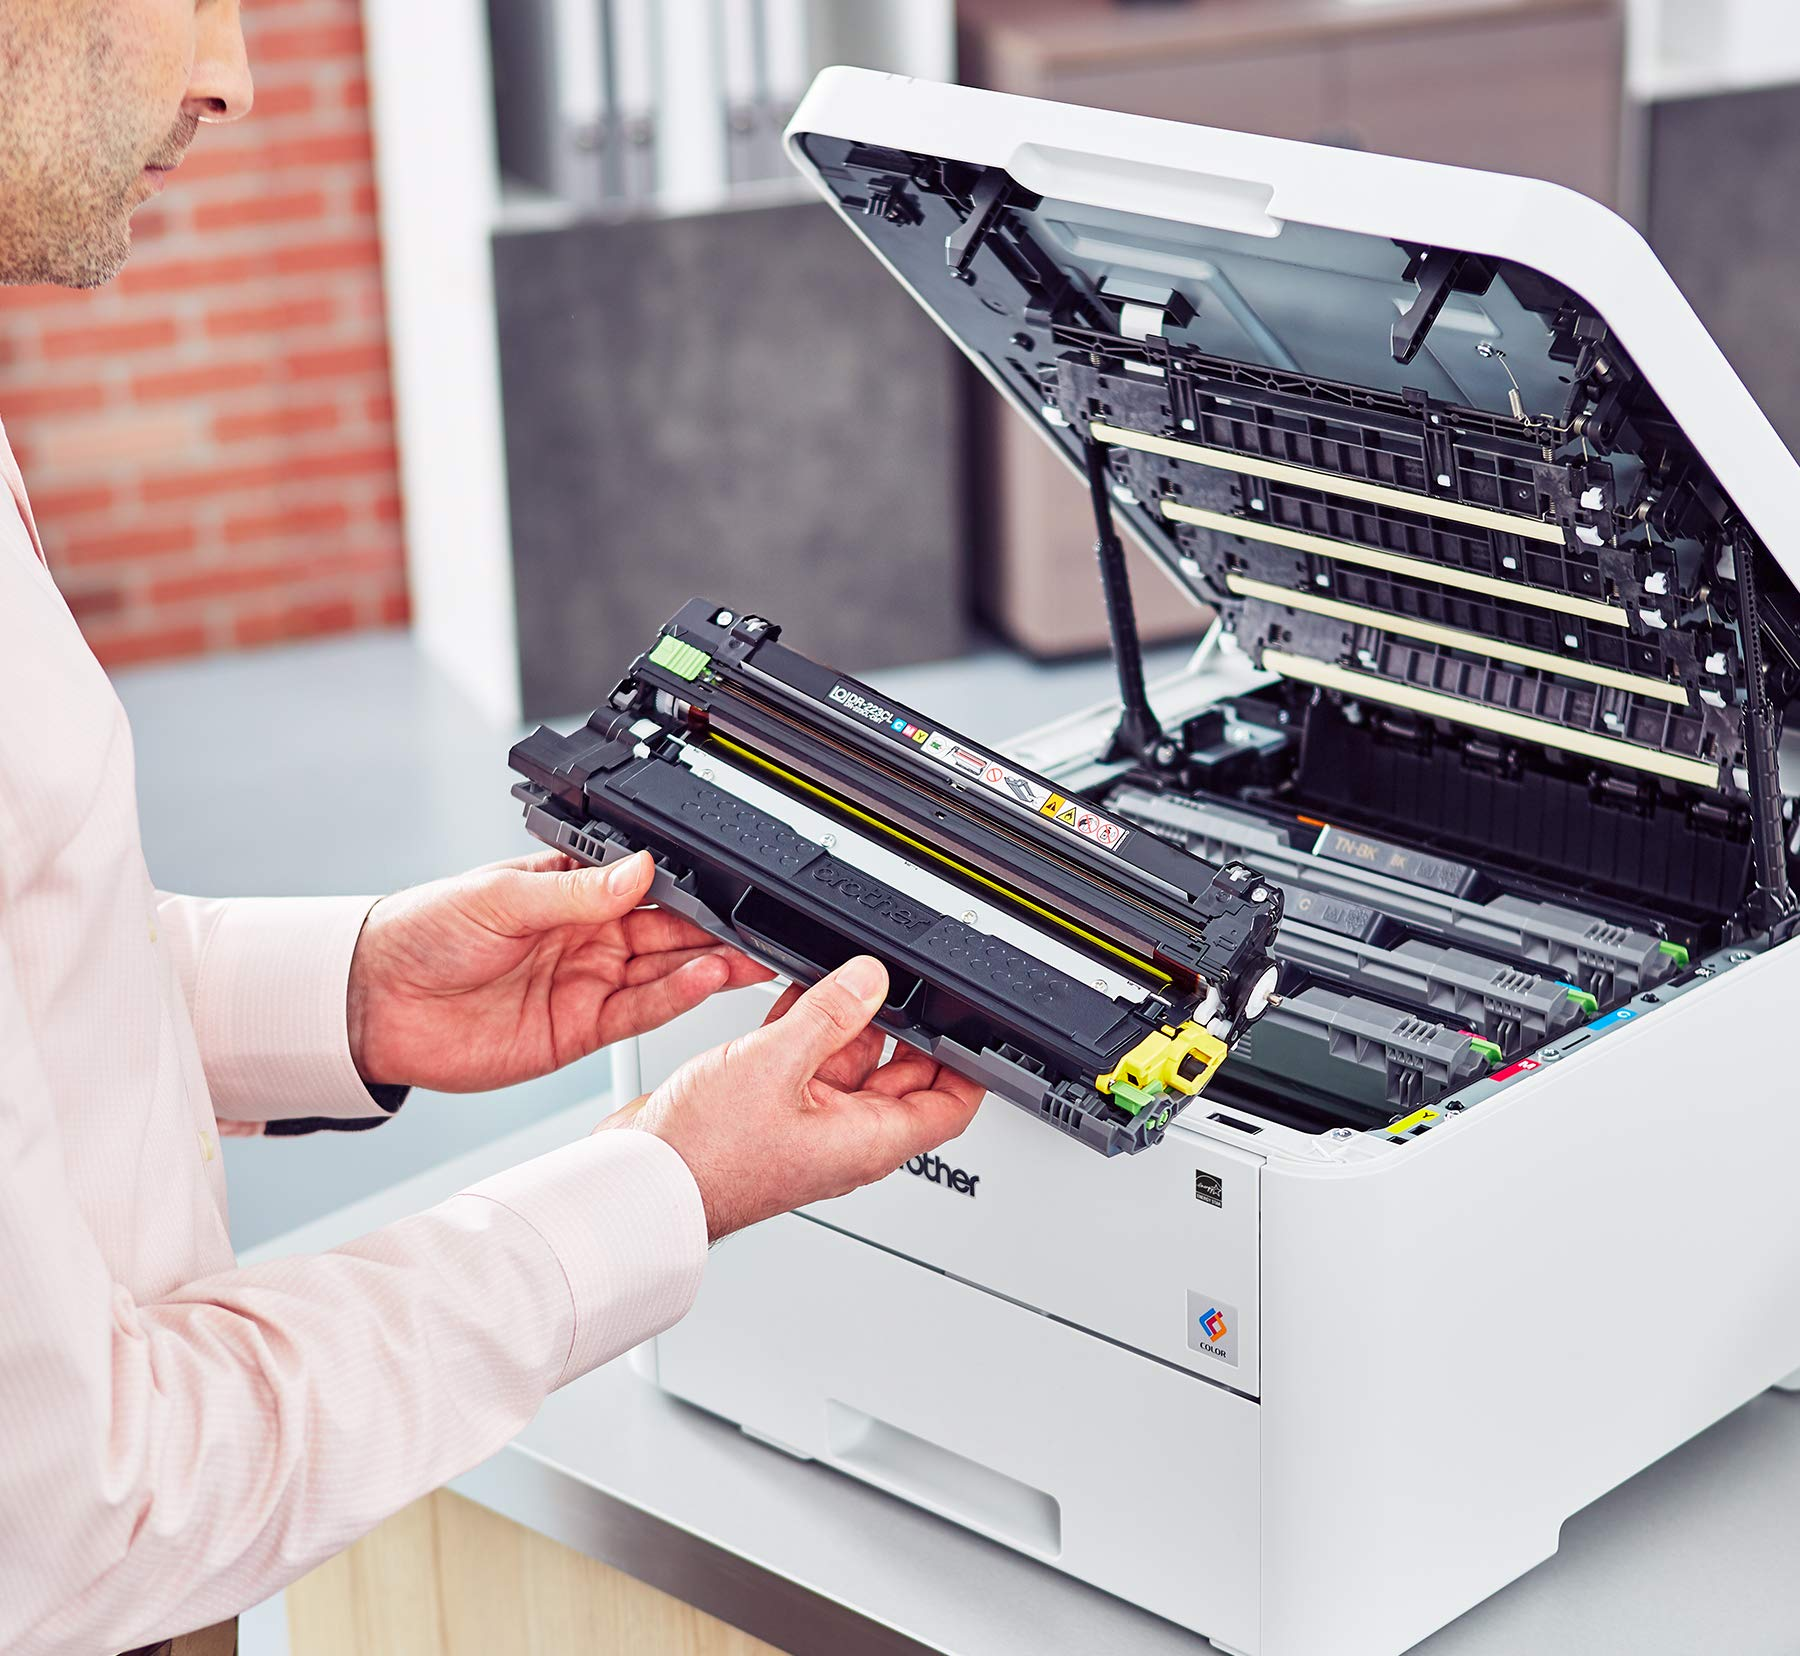 Brother HL-L3230CDW Compact Digital Color Printer Providing Laser Printer Quality Results with Wireless Printing and Duplex Printing, Amazon Dash Replenishment Enabled by Brother (Image #9)